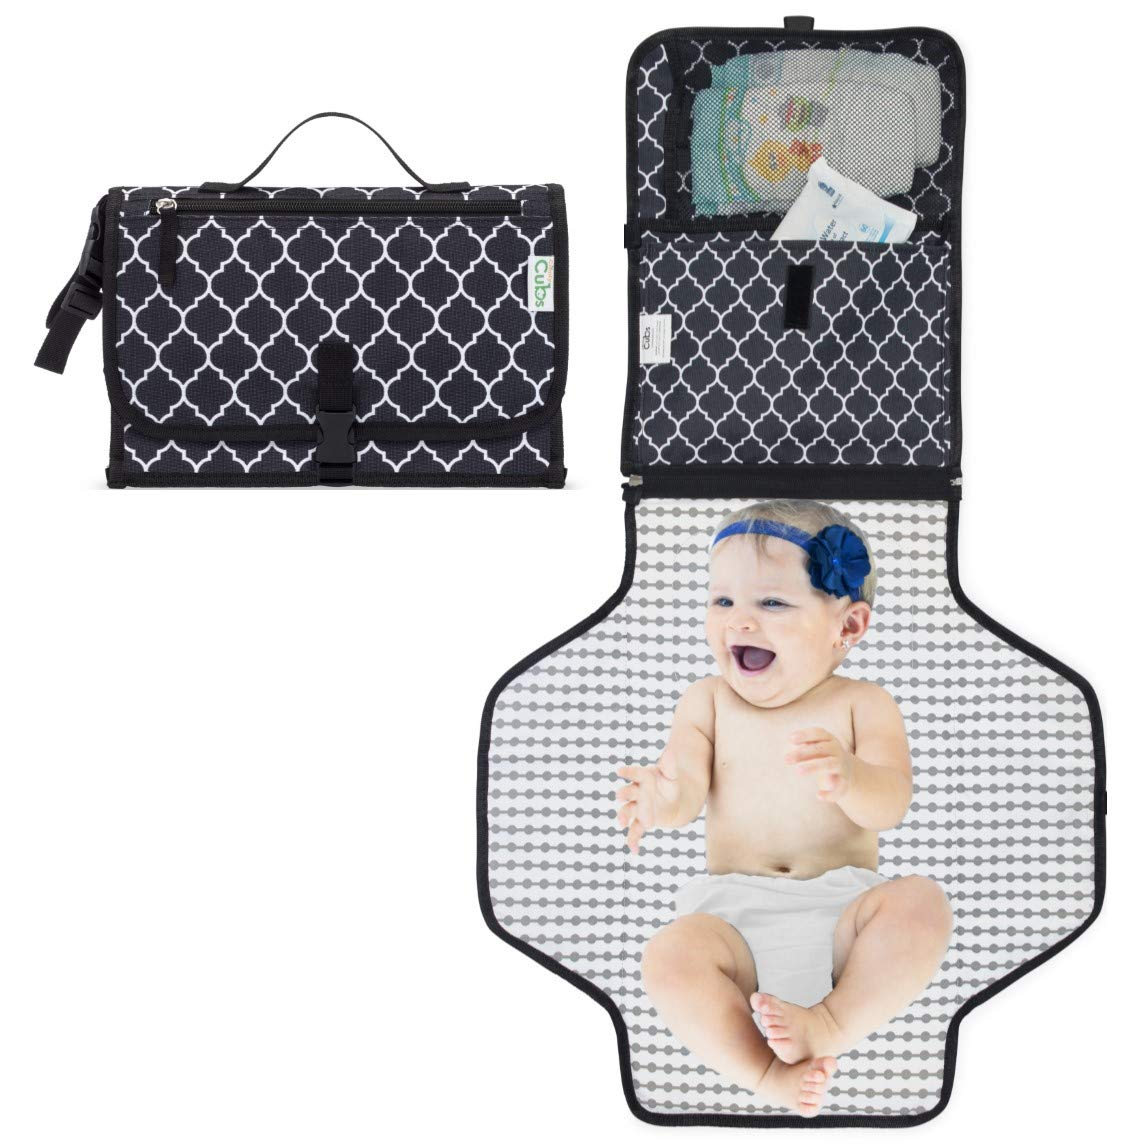 Baby Portable Changing Pad, Diaper Bag, Travel Changing Mat Station, Black Large Comfy Cubs CC-103